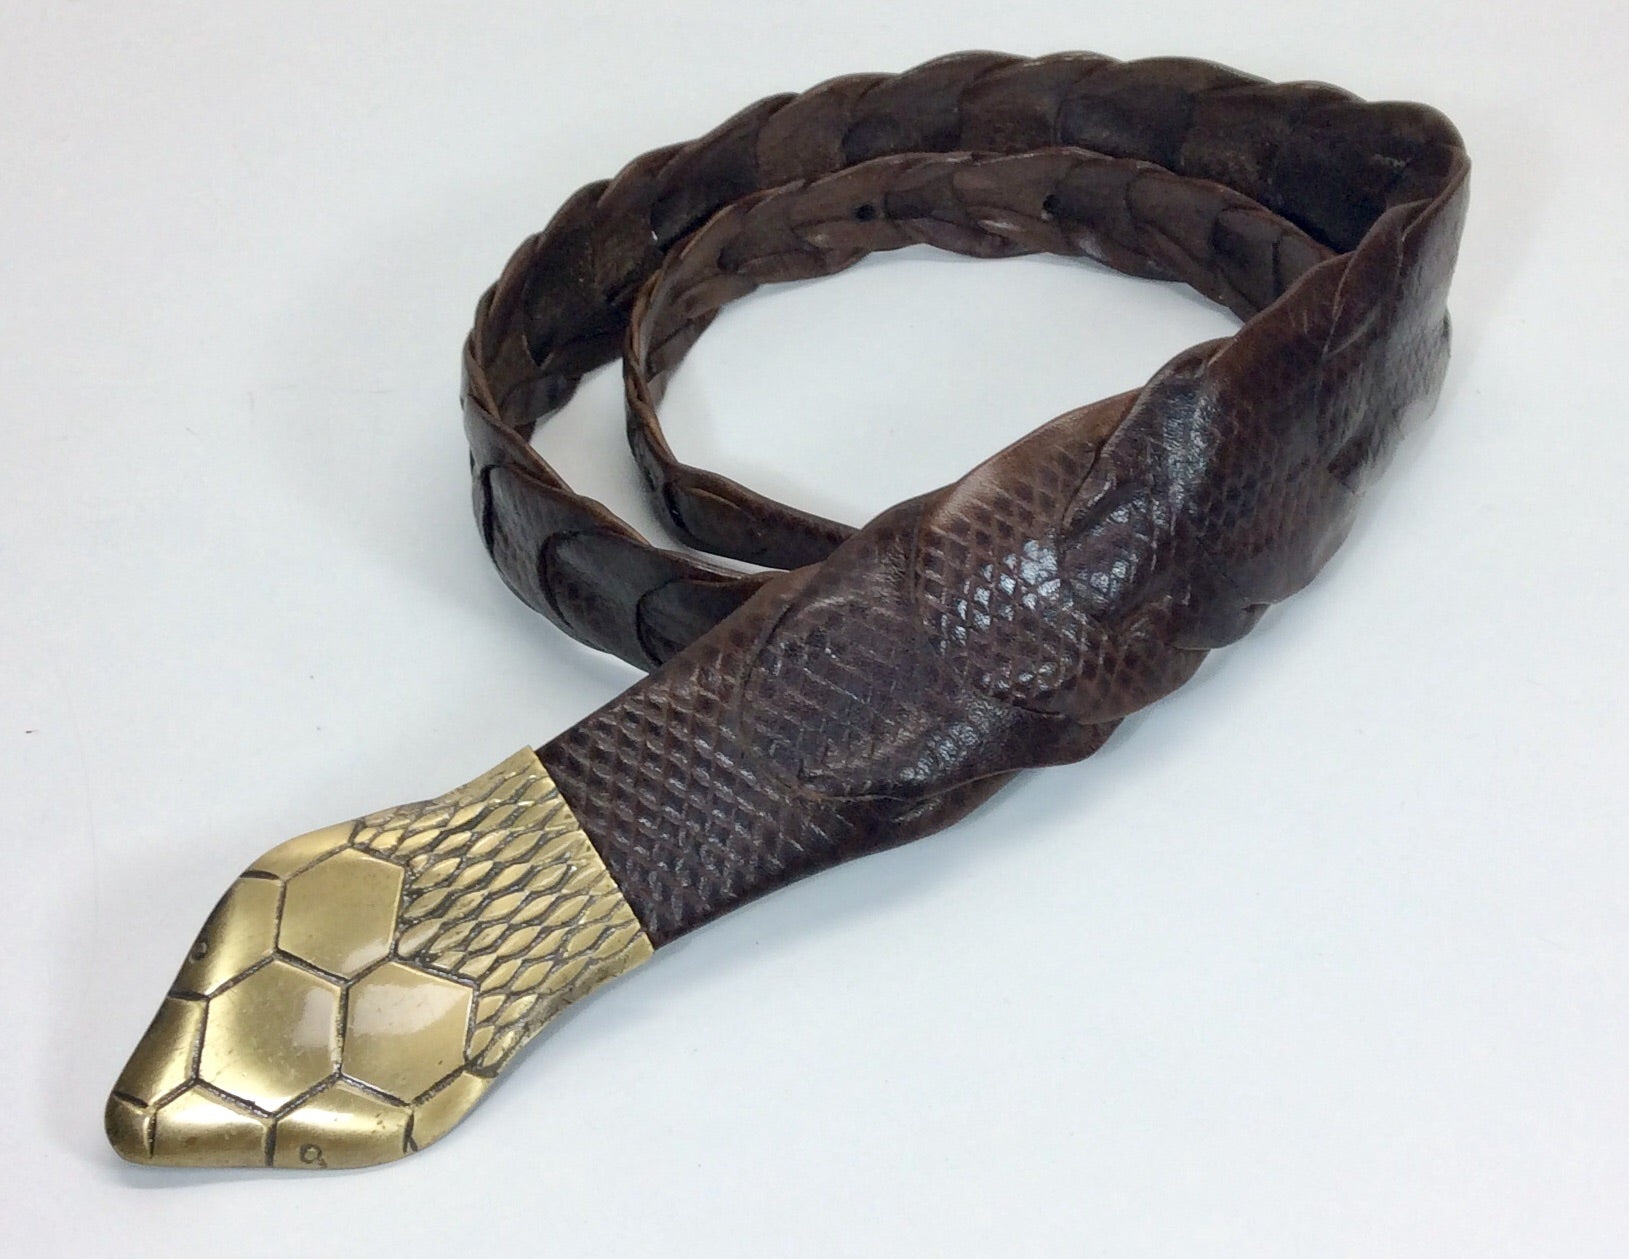 Black plaited belt with silver snakeskin head